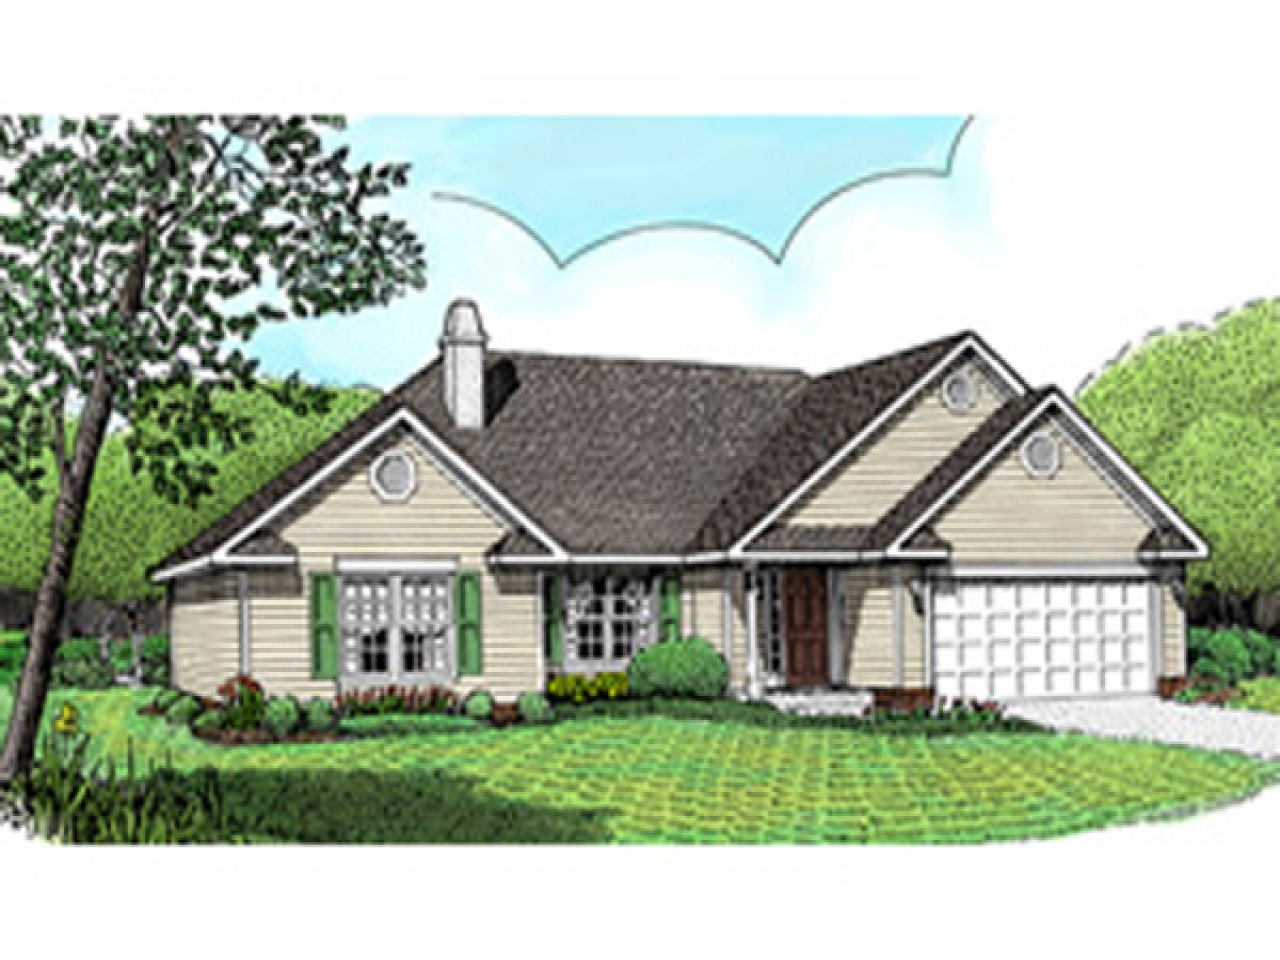 Ranch house plans with open floor plan ranch house plans for Modest home plans